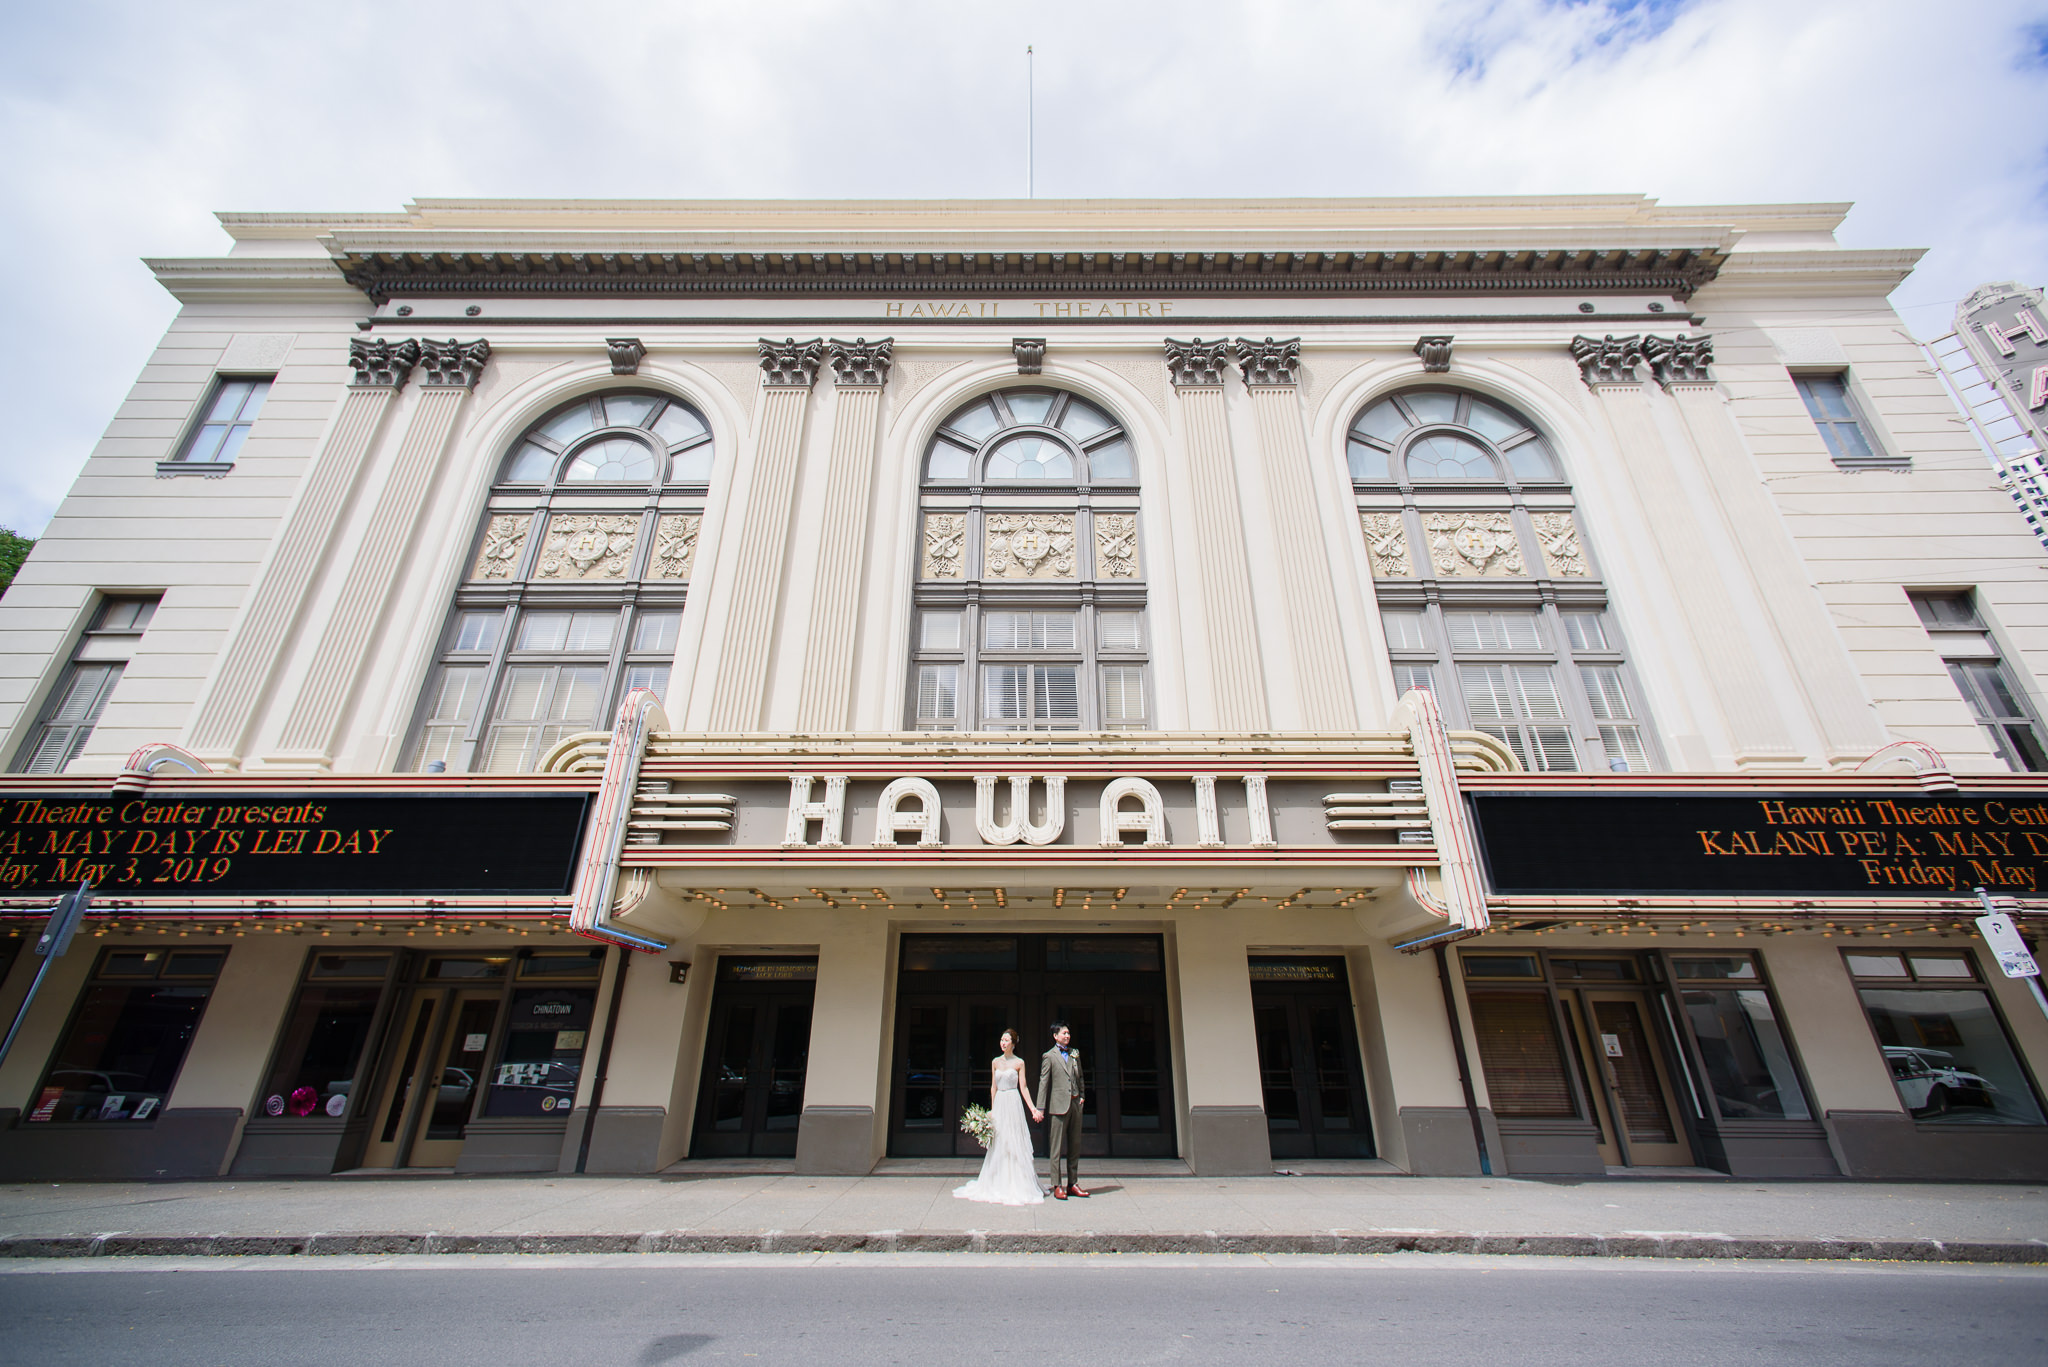 The historic Hawaii Theatre